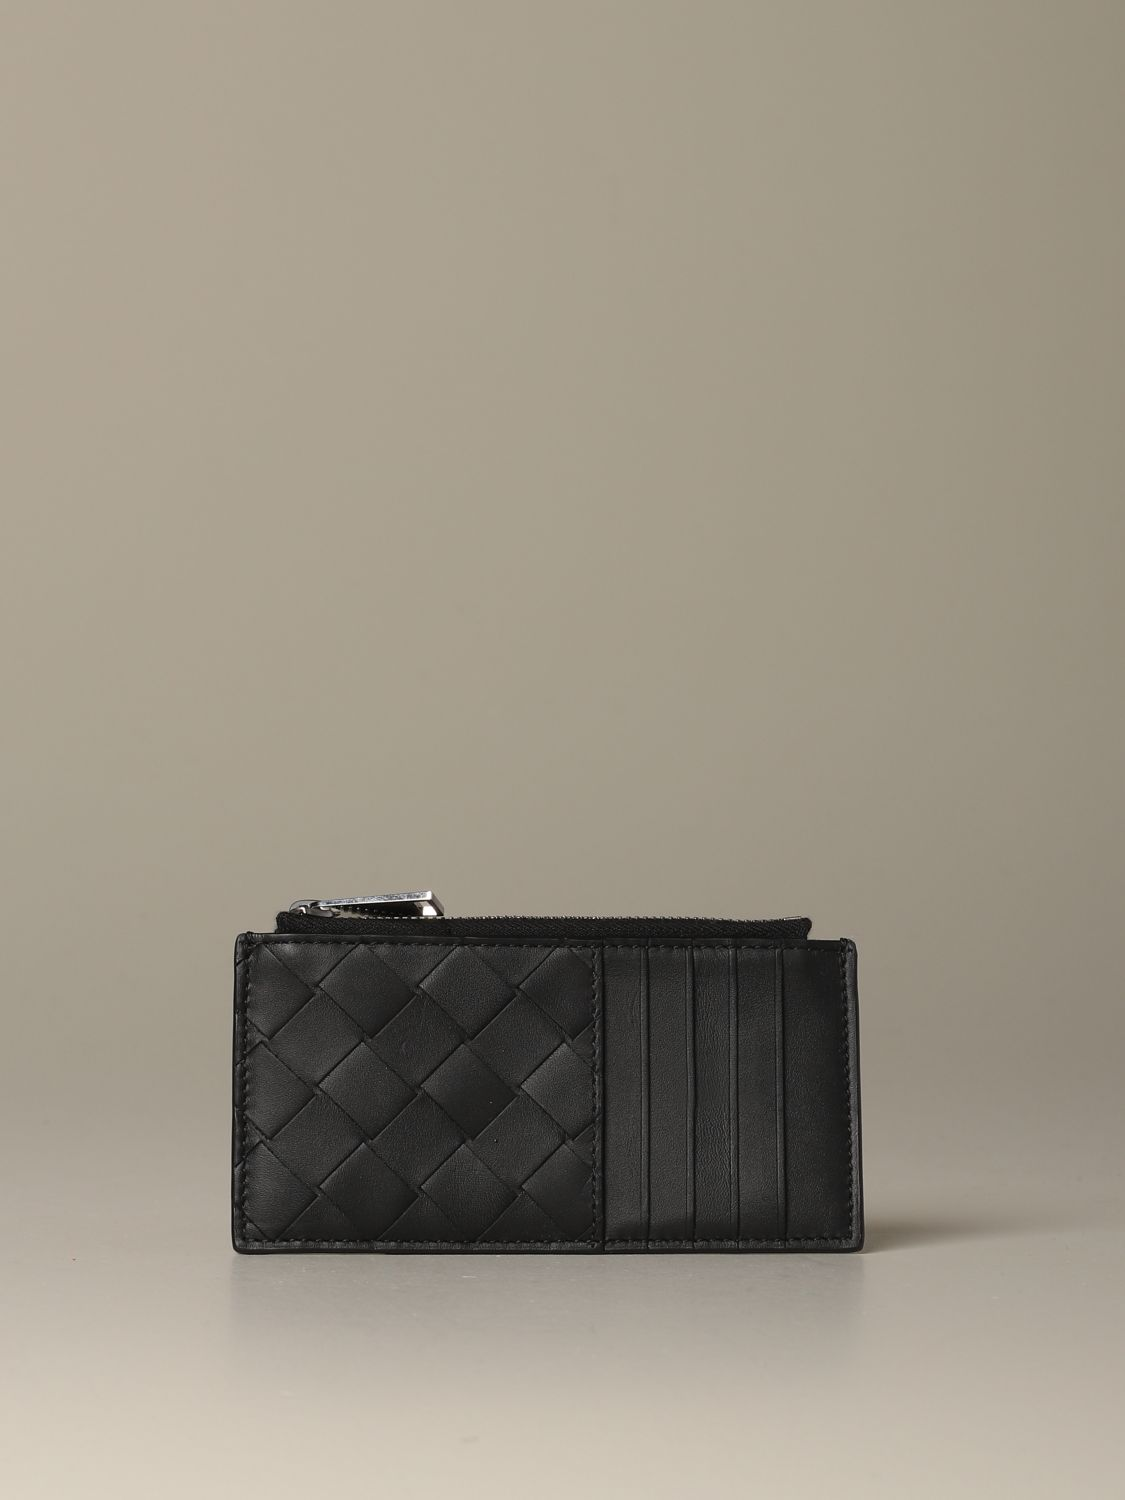 Wallet Bottega Veneta: Bottega Veneta credit card holder in woven leather 1.5 black 1